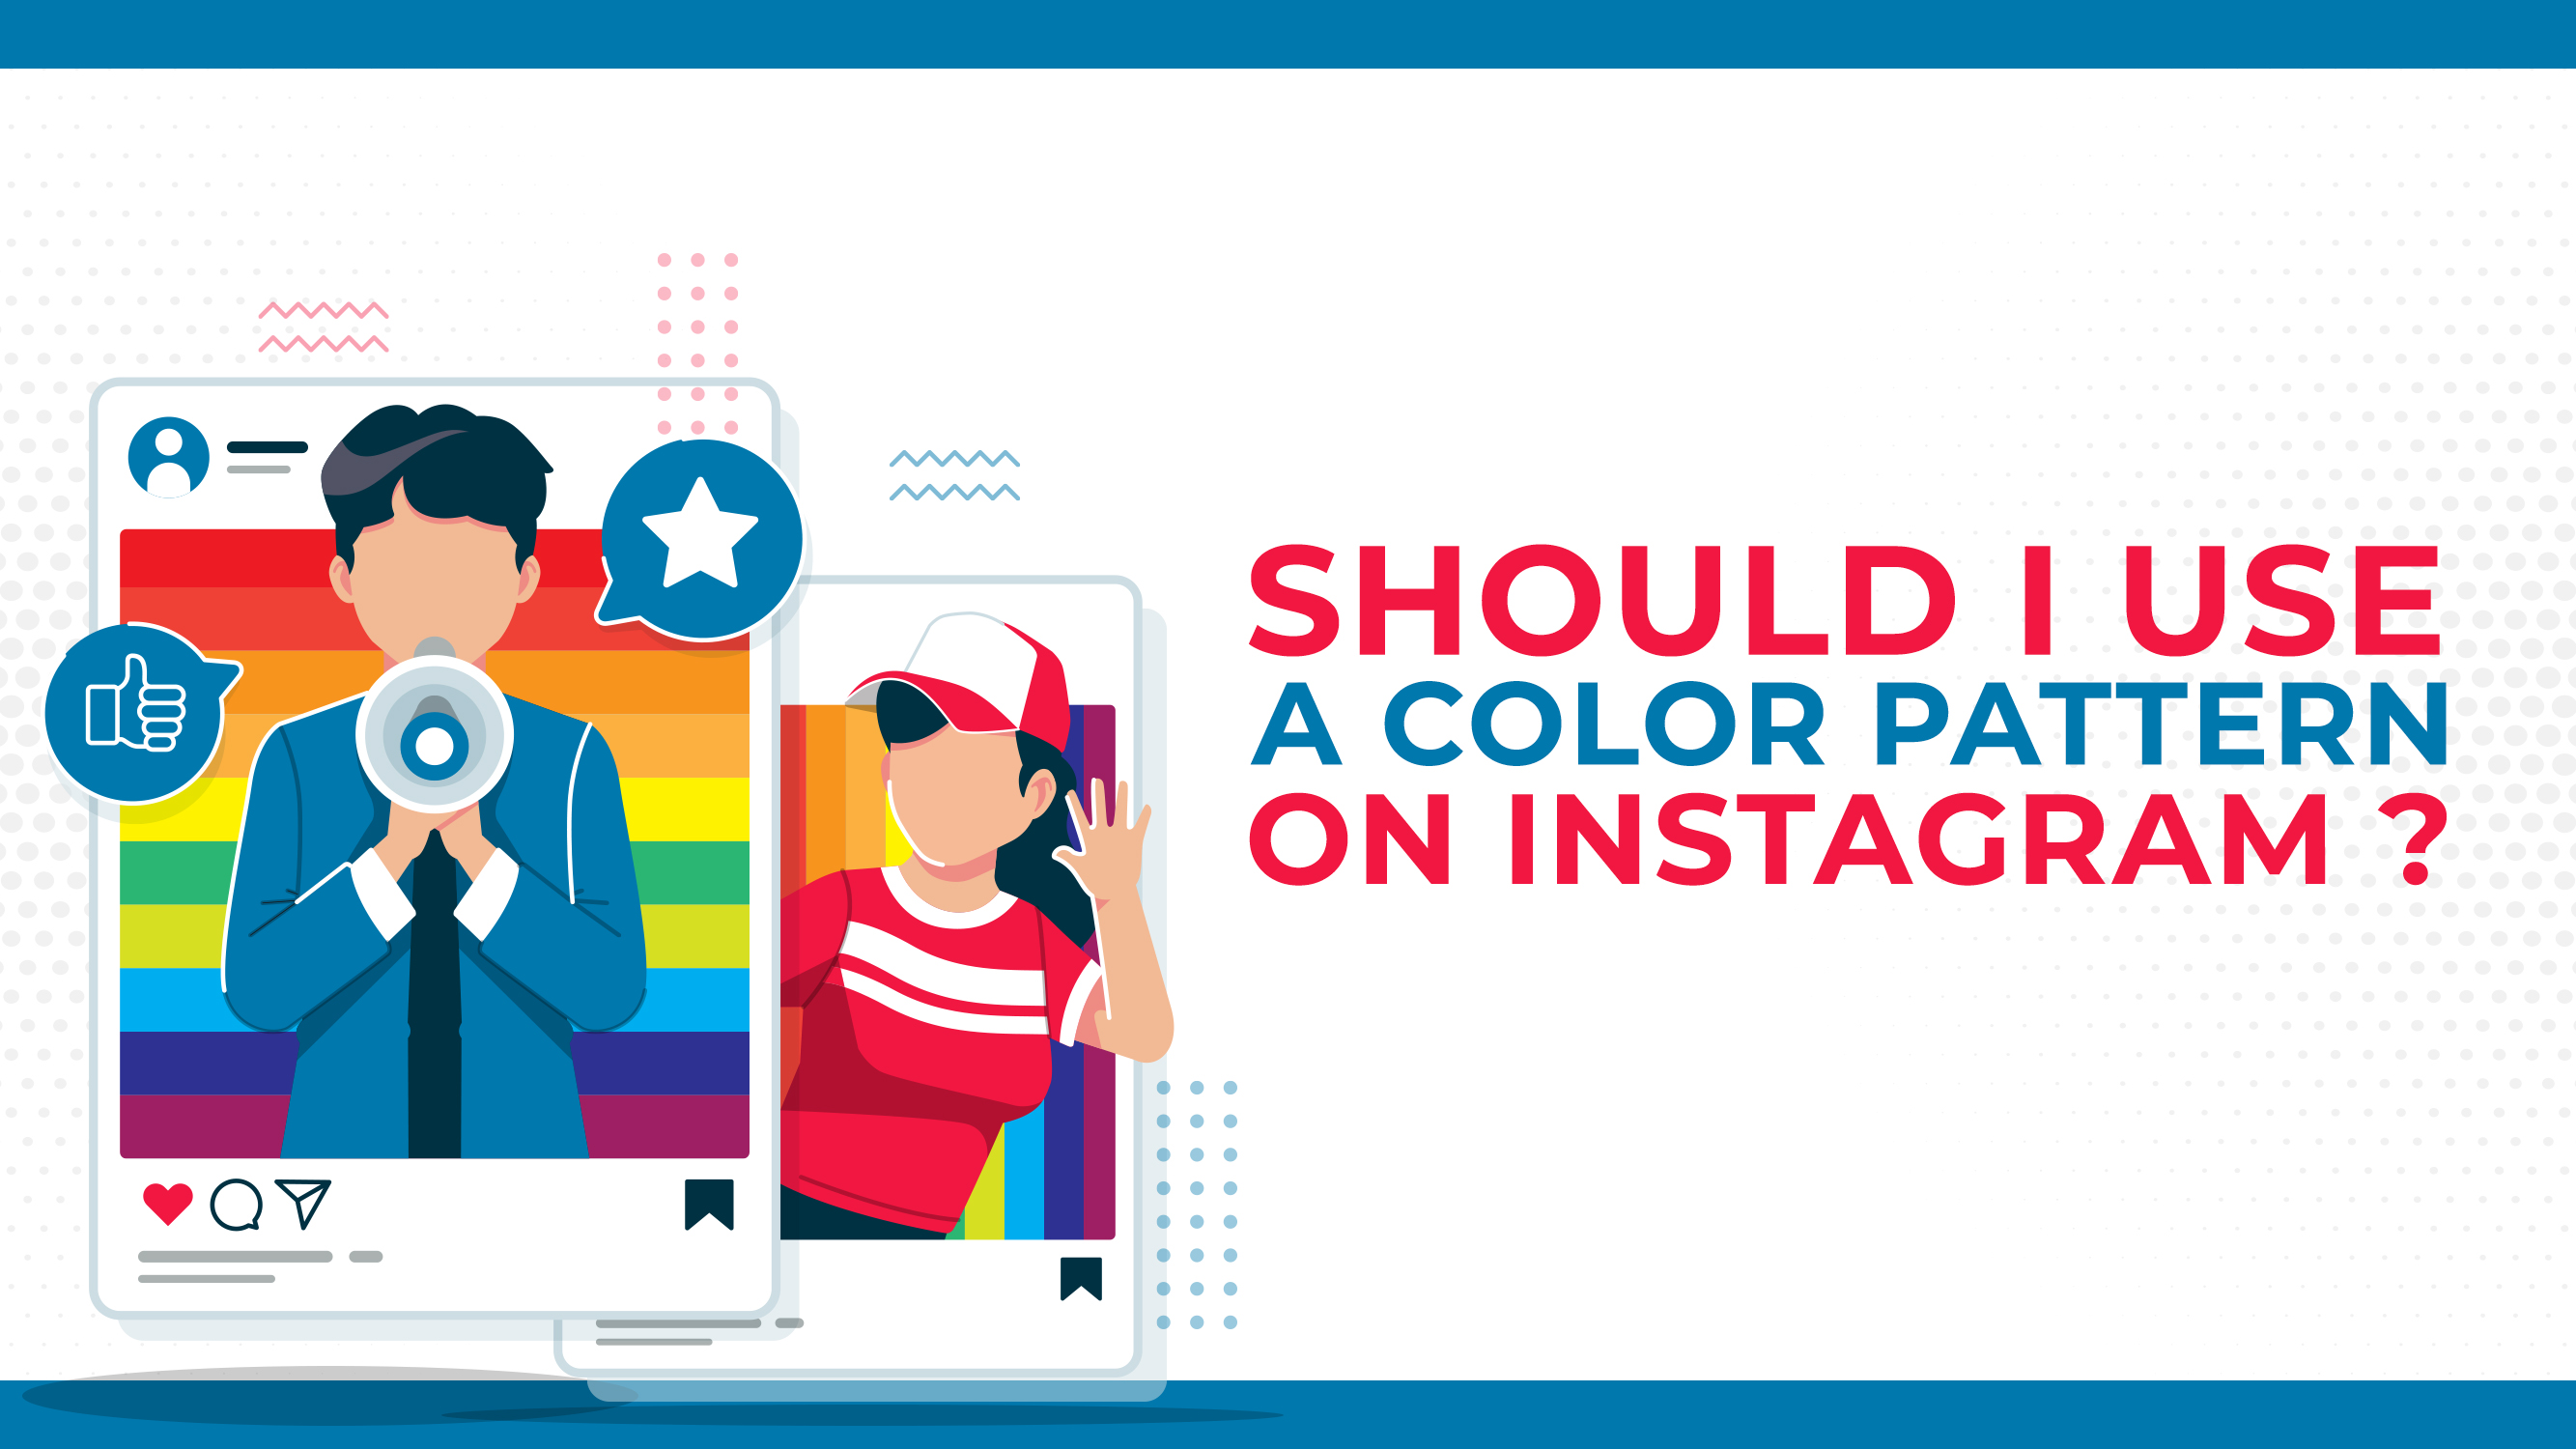 Should I Use A Color Pattern On Instagram?